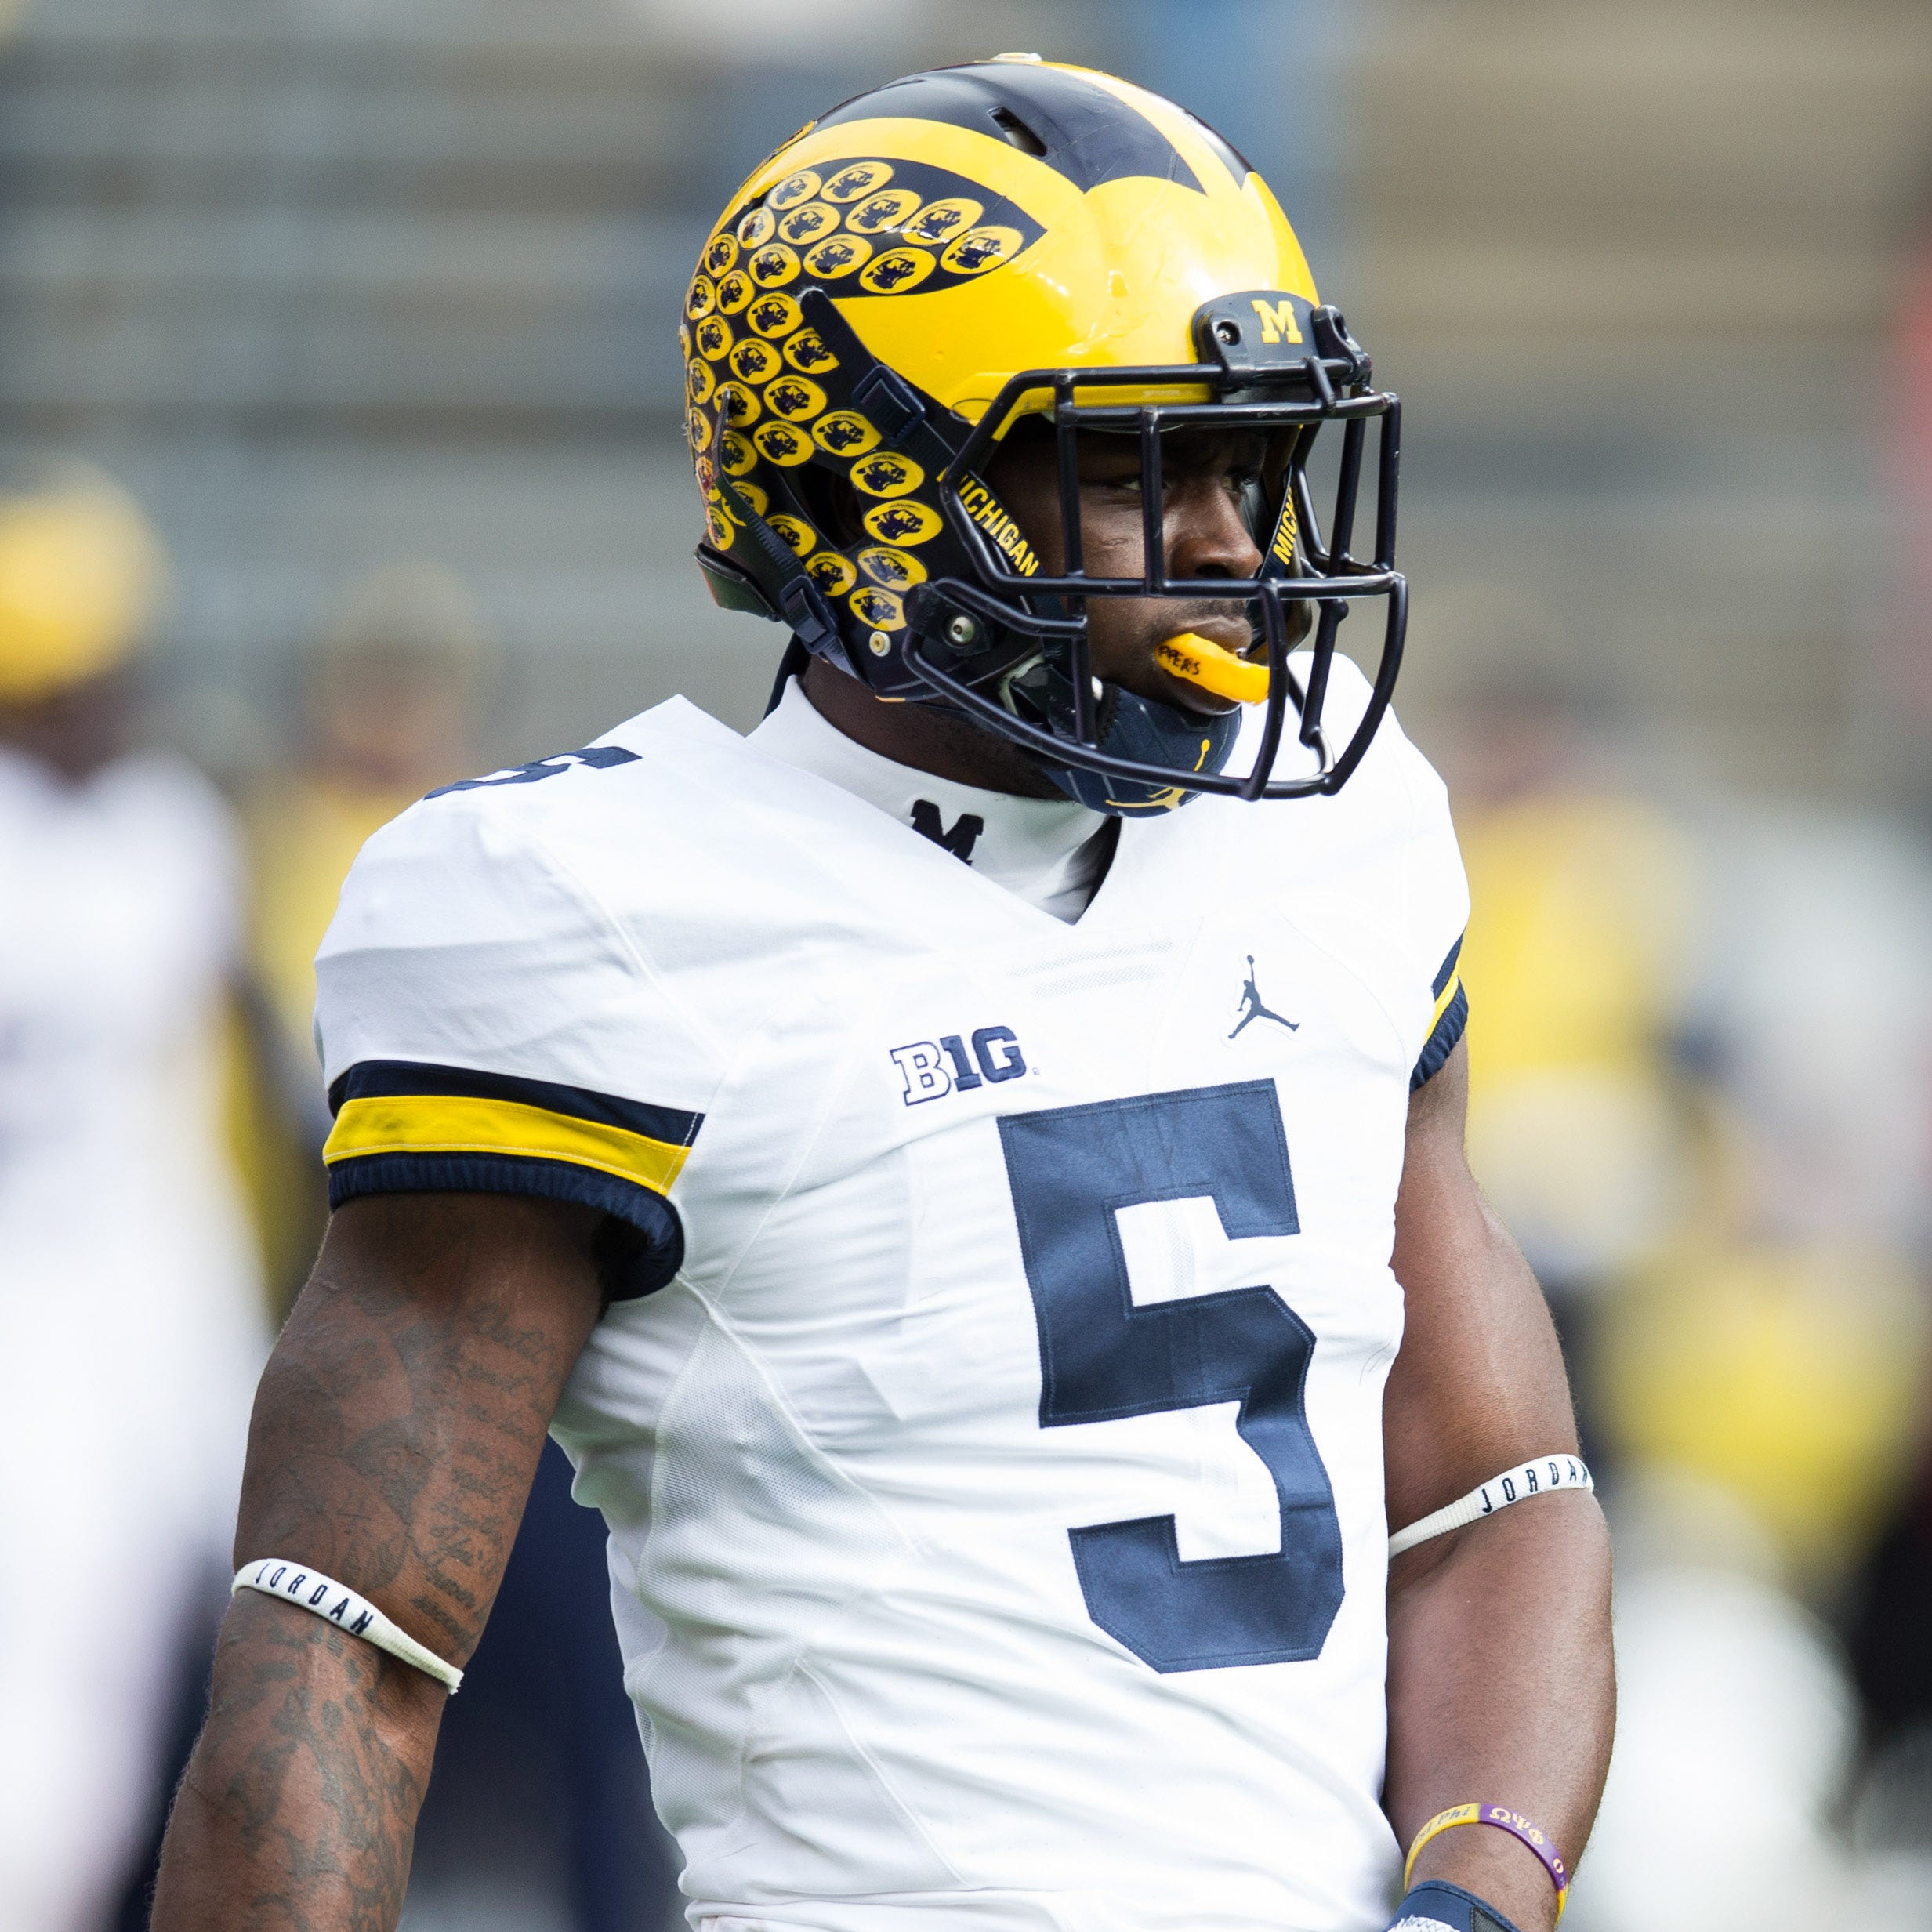 Former Michigan star Jabrill Peppers discussed former coordinator DJ Durkin during an appearance on The Rich Eisen Show.